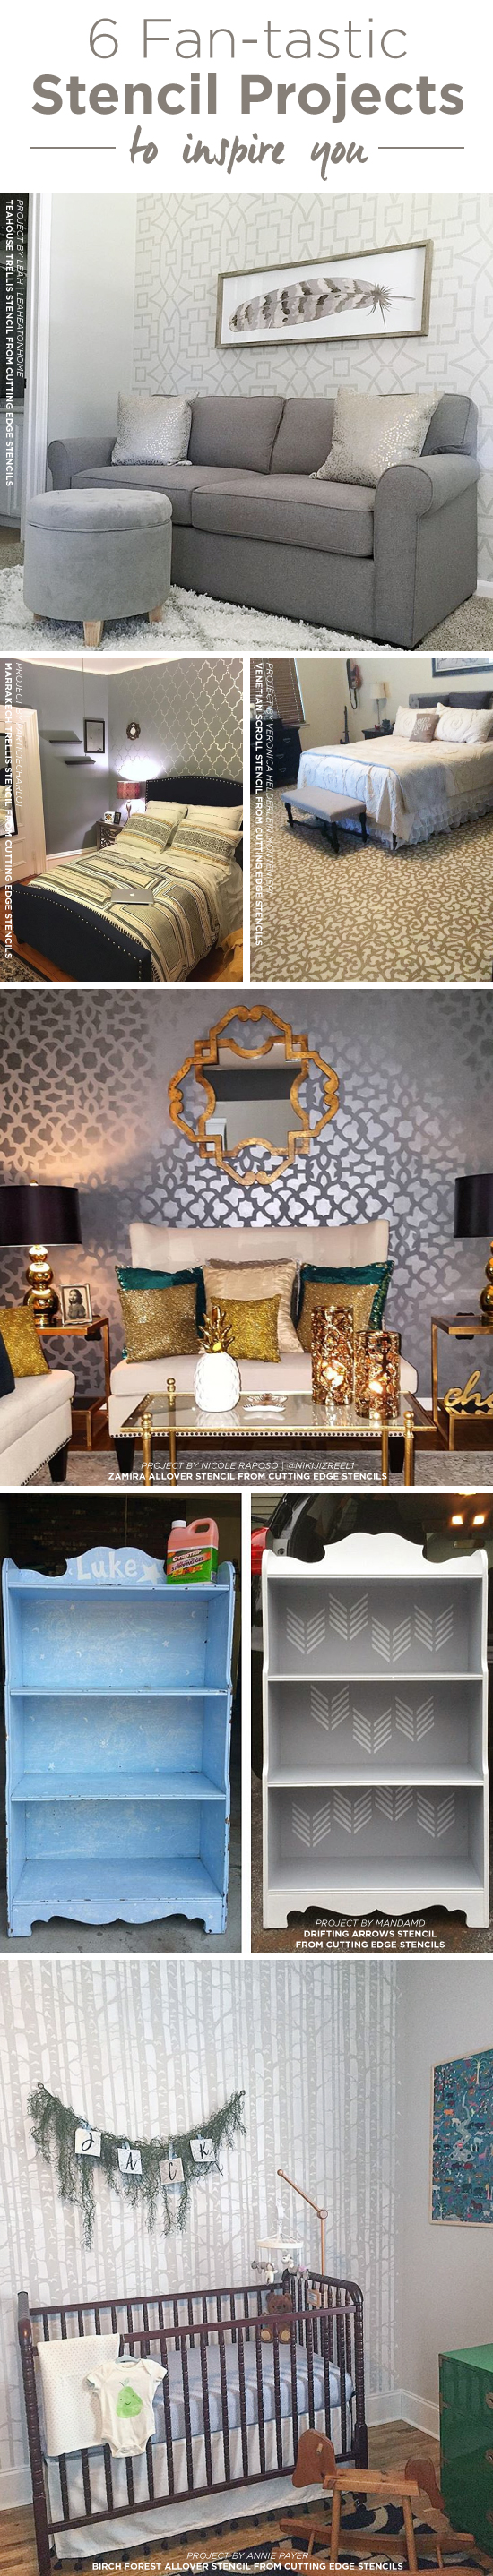 6 fan tastic stencil projects to inspire you stencil stories cutting edge stencils shares diy home decorating ideas spotted on instagram using wall and craft stencil amipublicfo Image collections